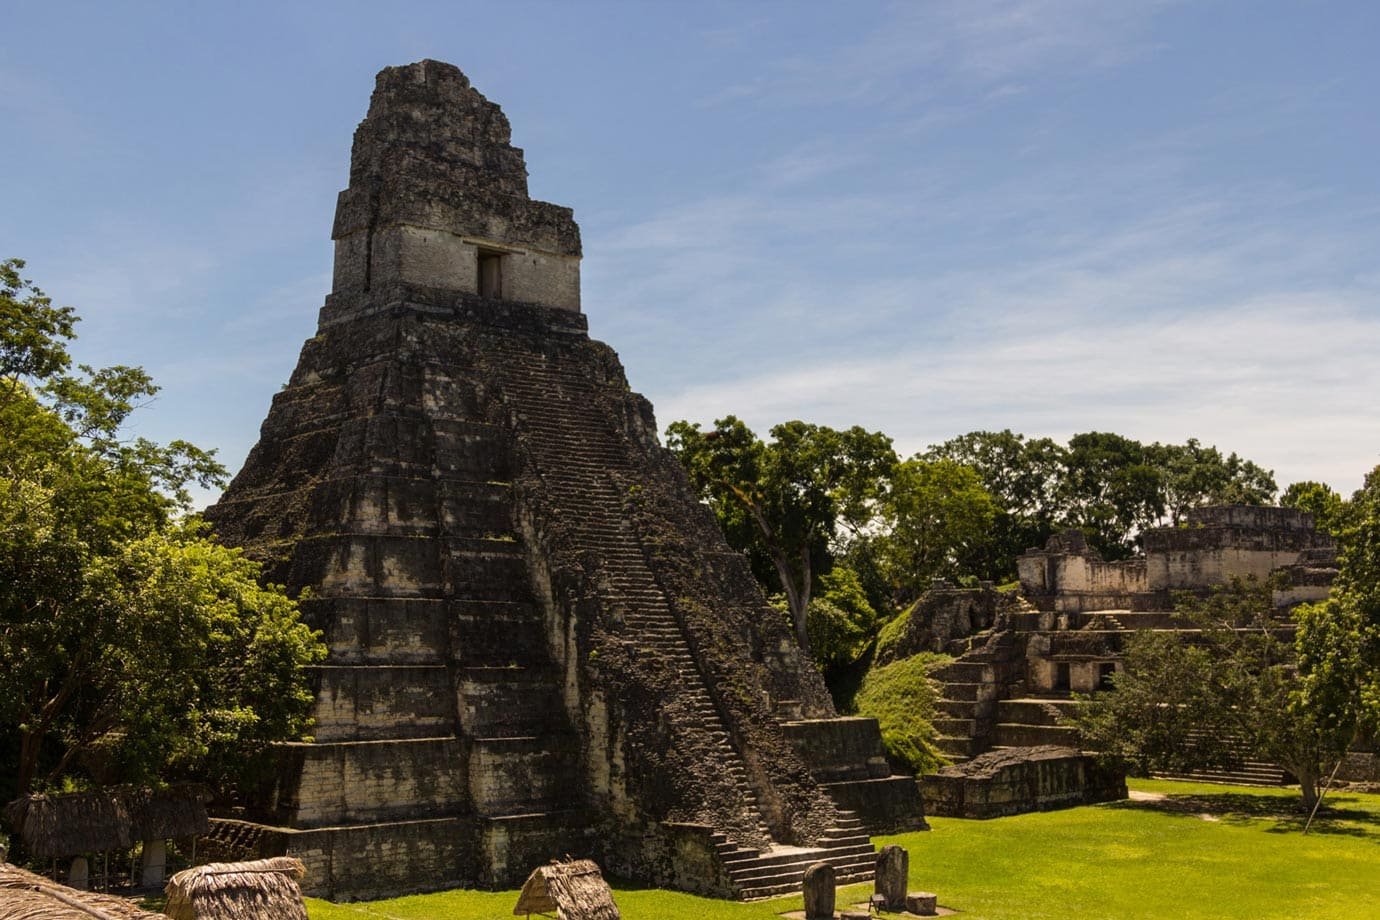 Tikal was once one of the great ancient cities in the world